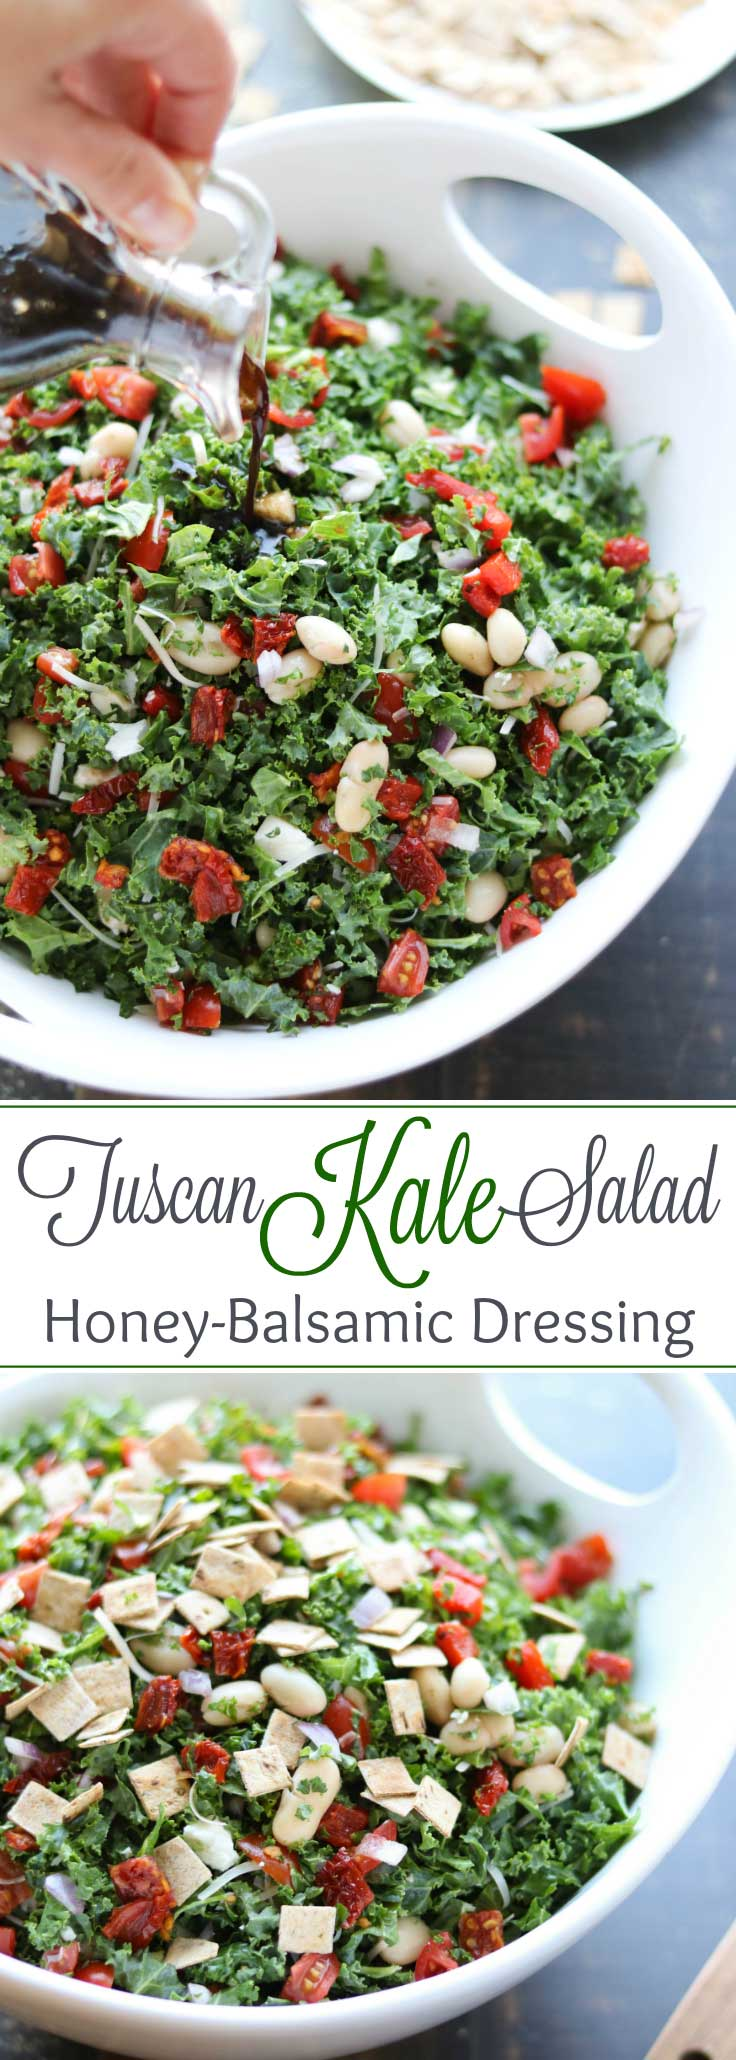 Loaded with so much great flavor and texture in every bite! This Tuscan Kale Salad with Honey-Balsamic Vinaigrette is so incredibly delicious ... you won't even notice how healthy it is! Seriously! Featuring tangy feta and parmesan, two kinds of tomatoes, cannellini beans, roasted red peppers, and fresh basil … all draped in a simple honey-balsamic vinaigrette dressing! #kale #salad #superfood #healthyrecipes #saladdressing #vinaigrette #kalesalad #greens #sponsored | www.TwoHealthyKitchens.com